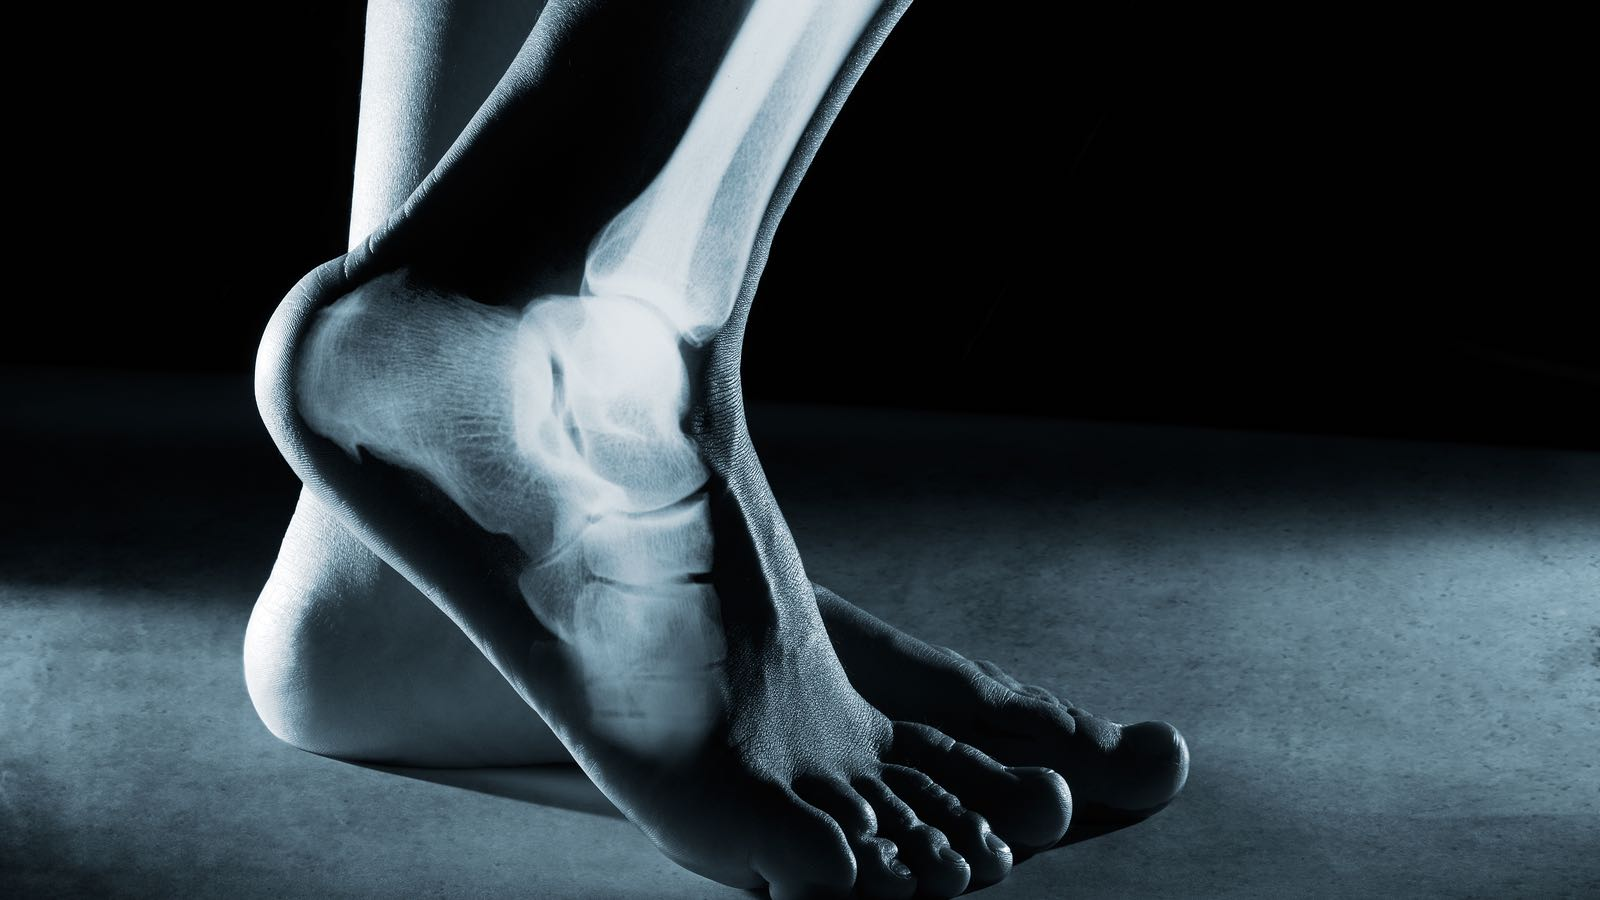 Models of Foot Function - Explore different models of foot function with podiatrist Kevin Bruce